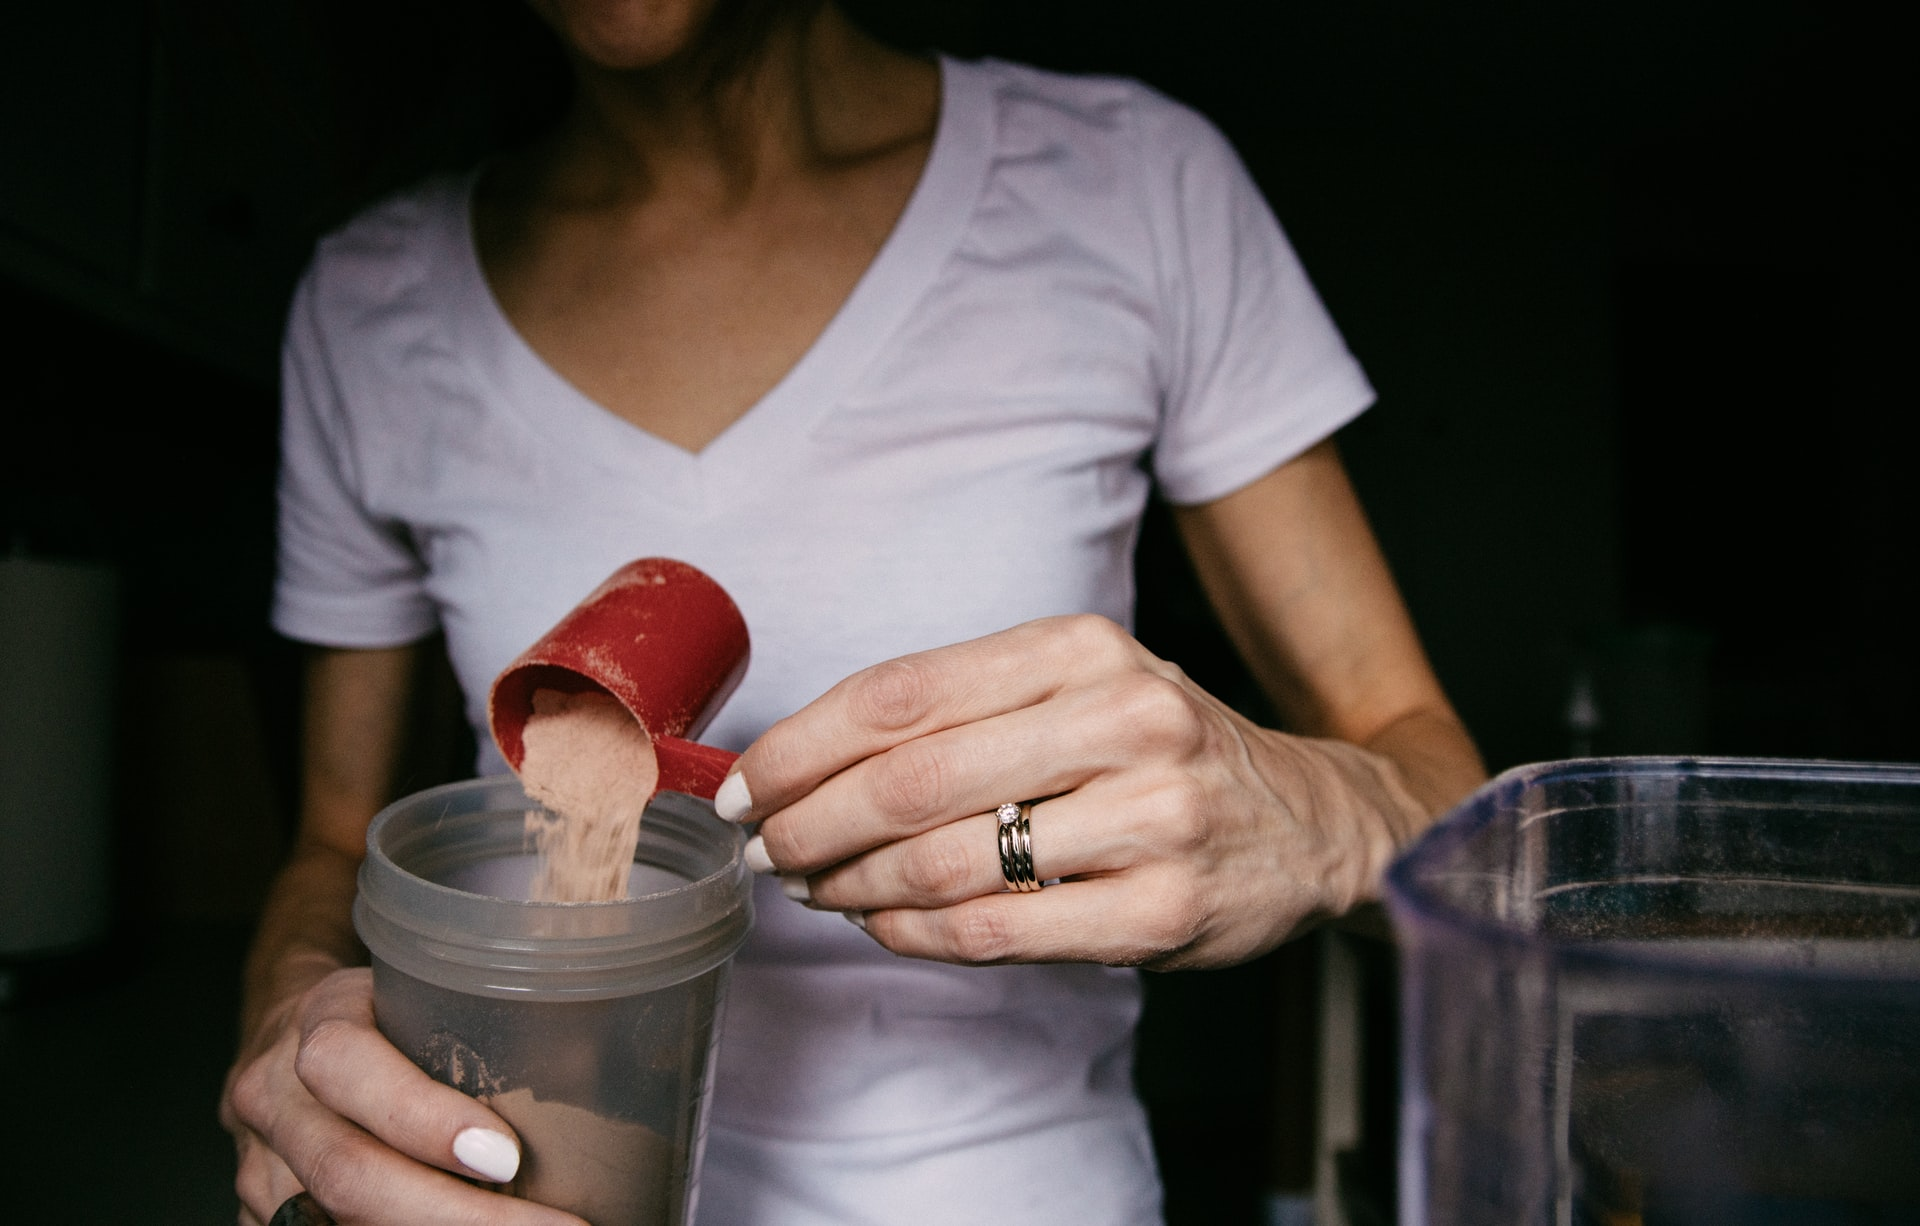 Why Our Customers Love This Protein Shake